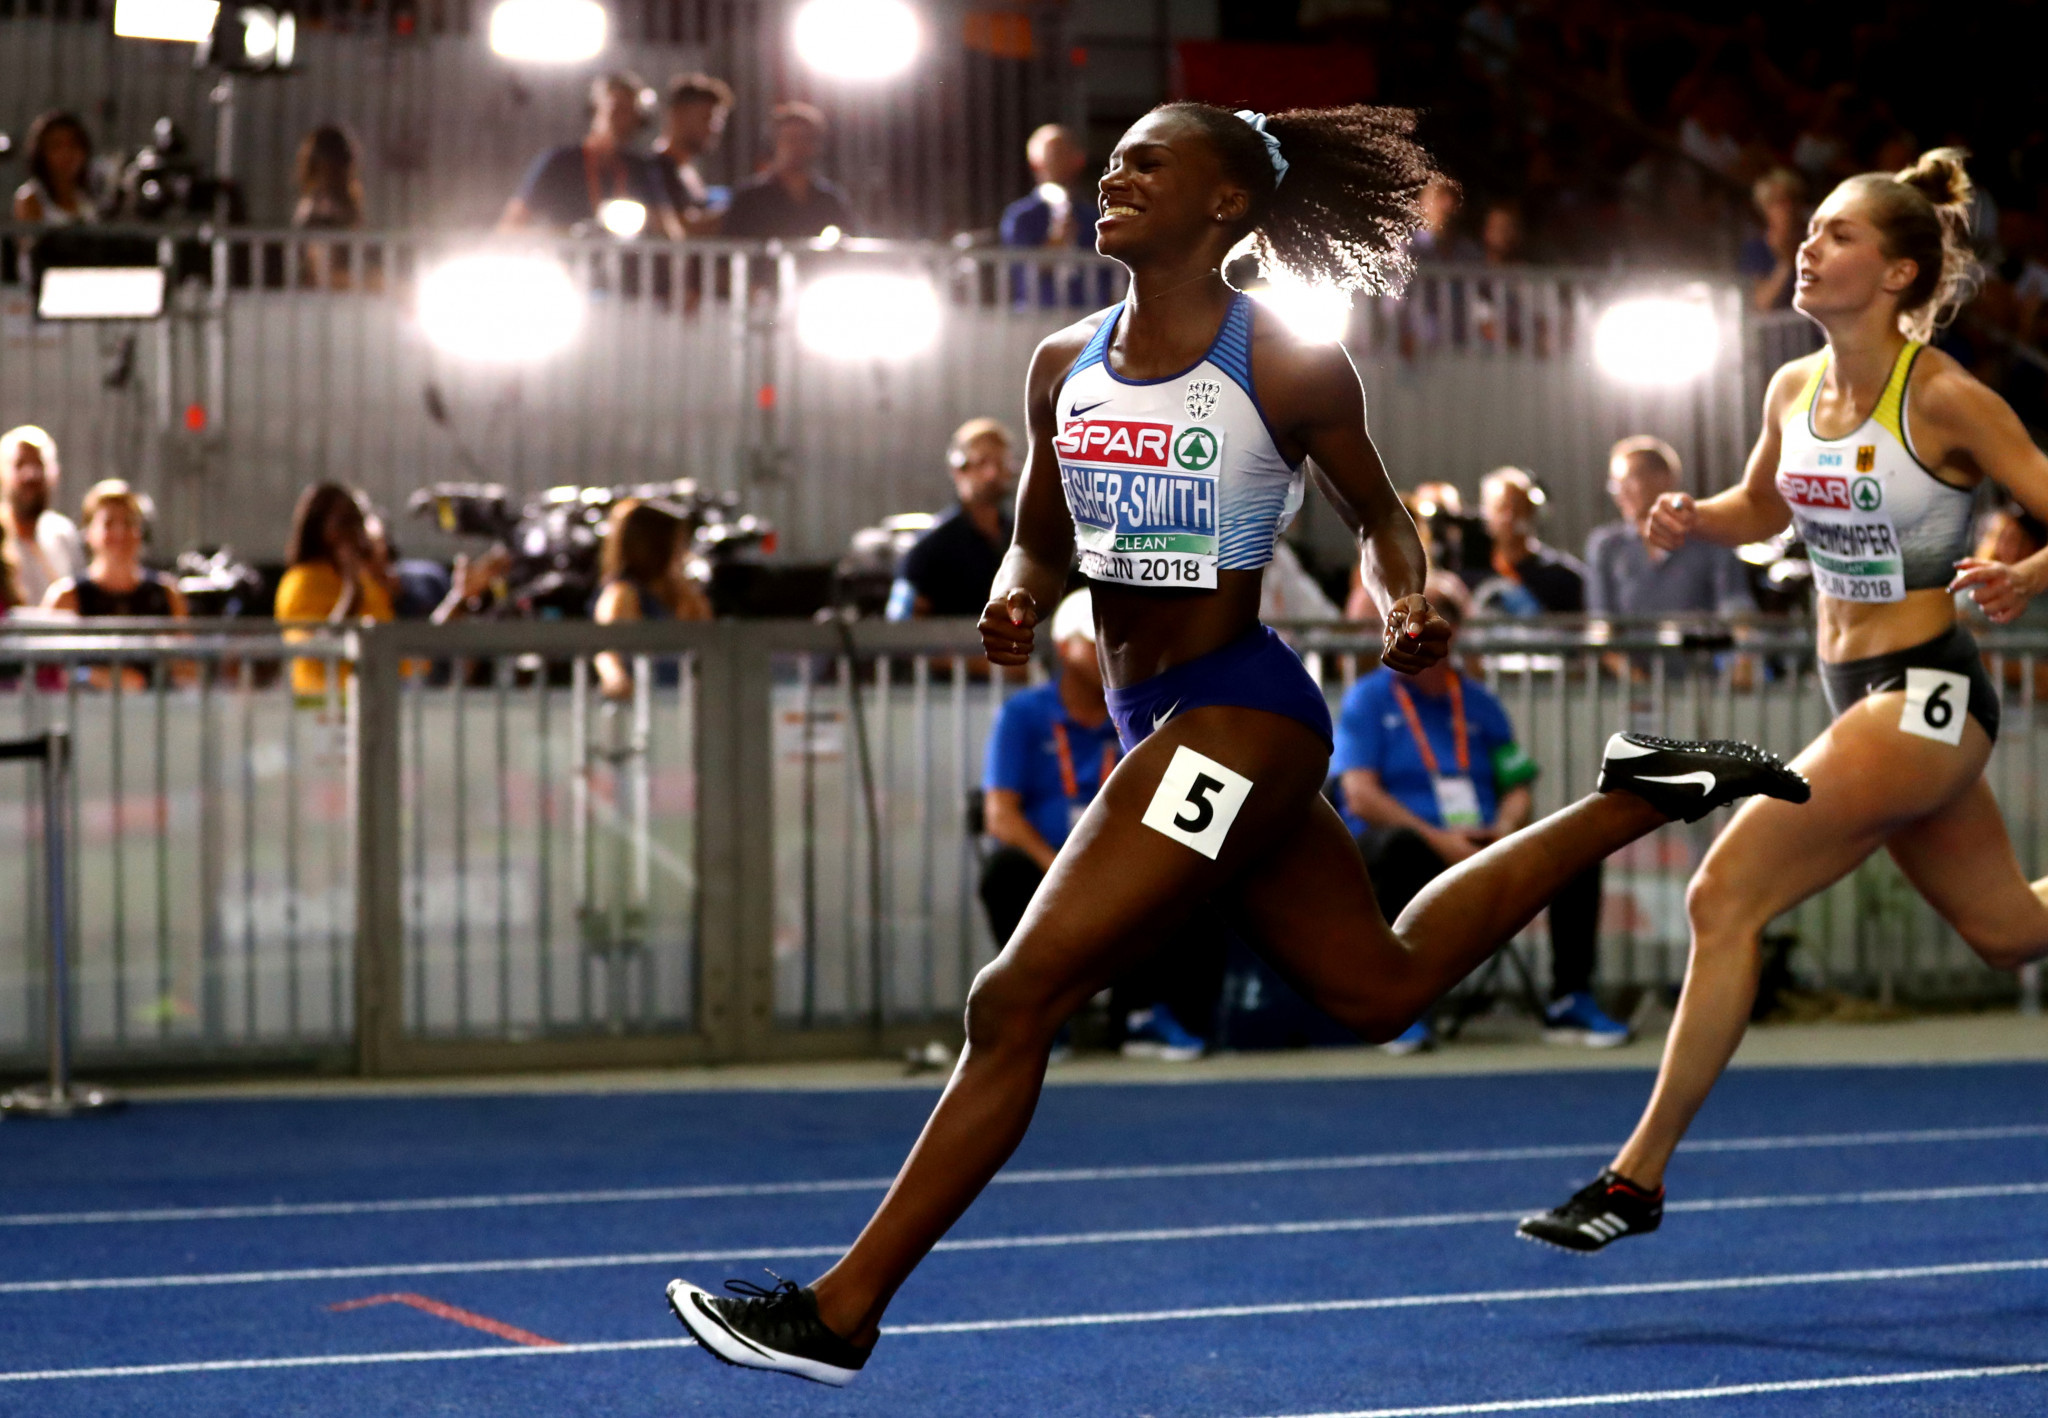 Over in Berlin, Dina Asher-Smith won the first of two golds for Great Britain in the 100m, corssing the line in a national record of 10.85secs ©Getty Images